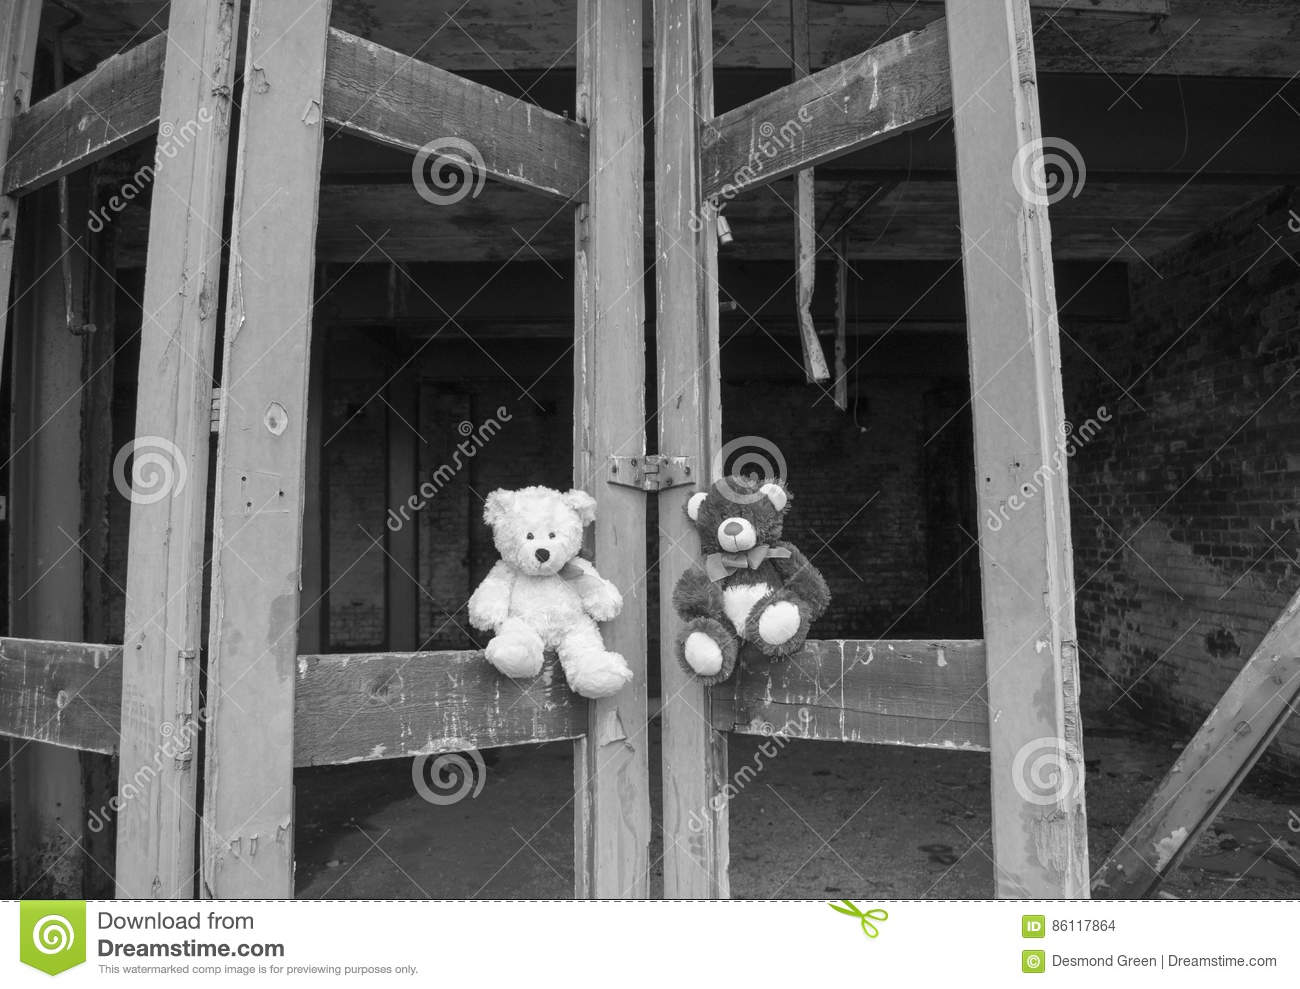 Bianco e nero di Teddy Bears Sitting On Derelict Fie Station Bay Doors In